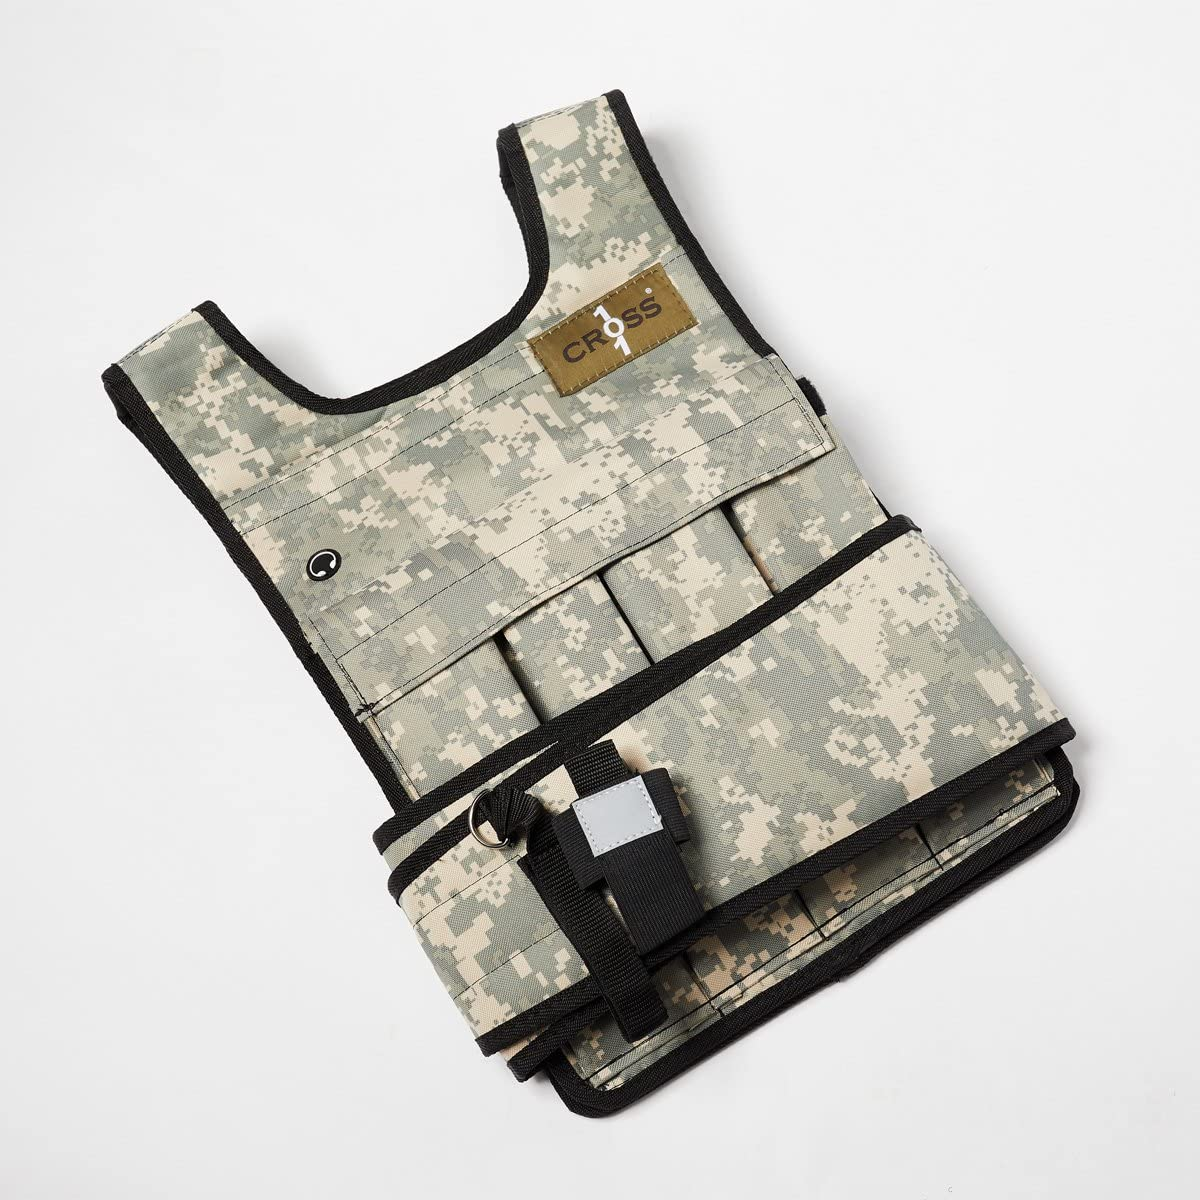 CROSS101 Weighted Vest Arctic Desert Camouflage 20lbs – 80lbs